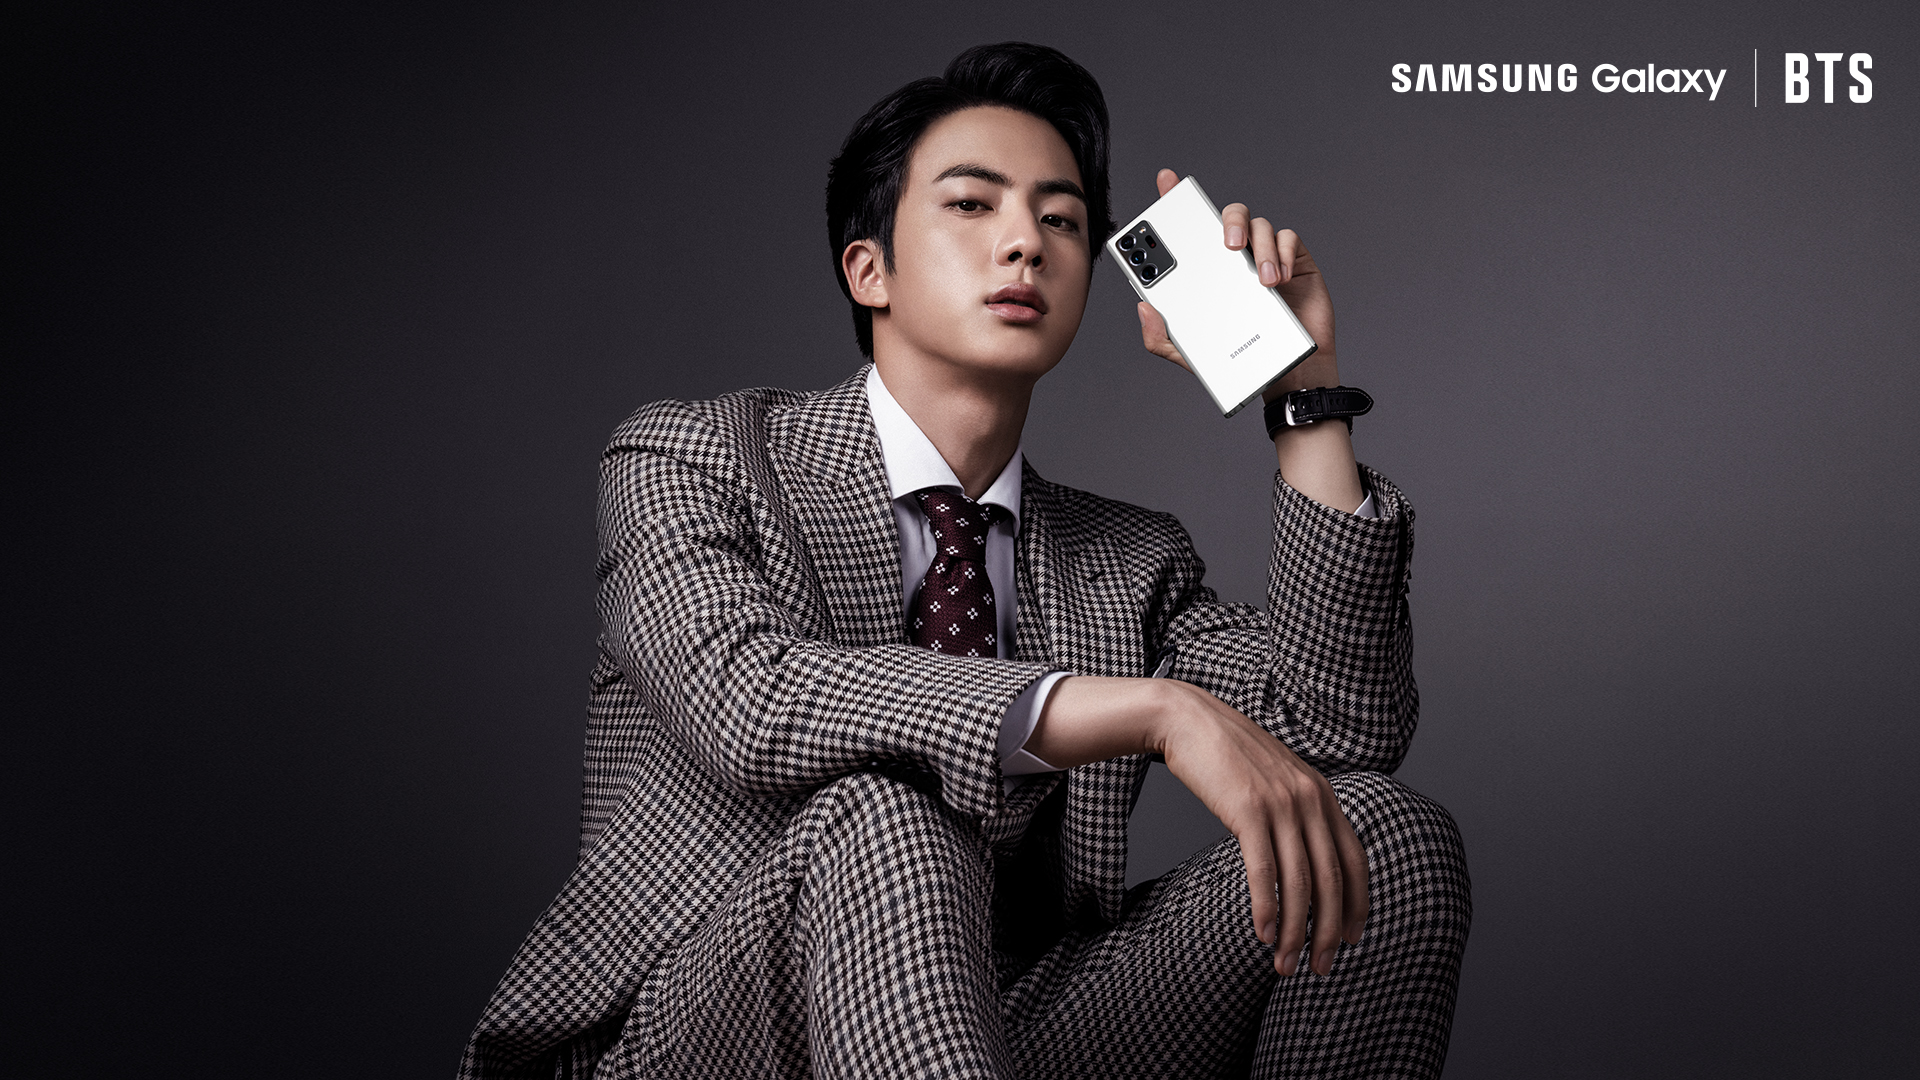 Samsung Mobile On Twitter Spotted Bts S Jin Swaggin With The Galaxynote20 Bts Twt Galaxyxbts Learn More Https T Co Zx38uzrgxu